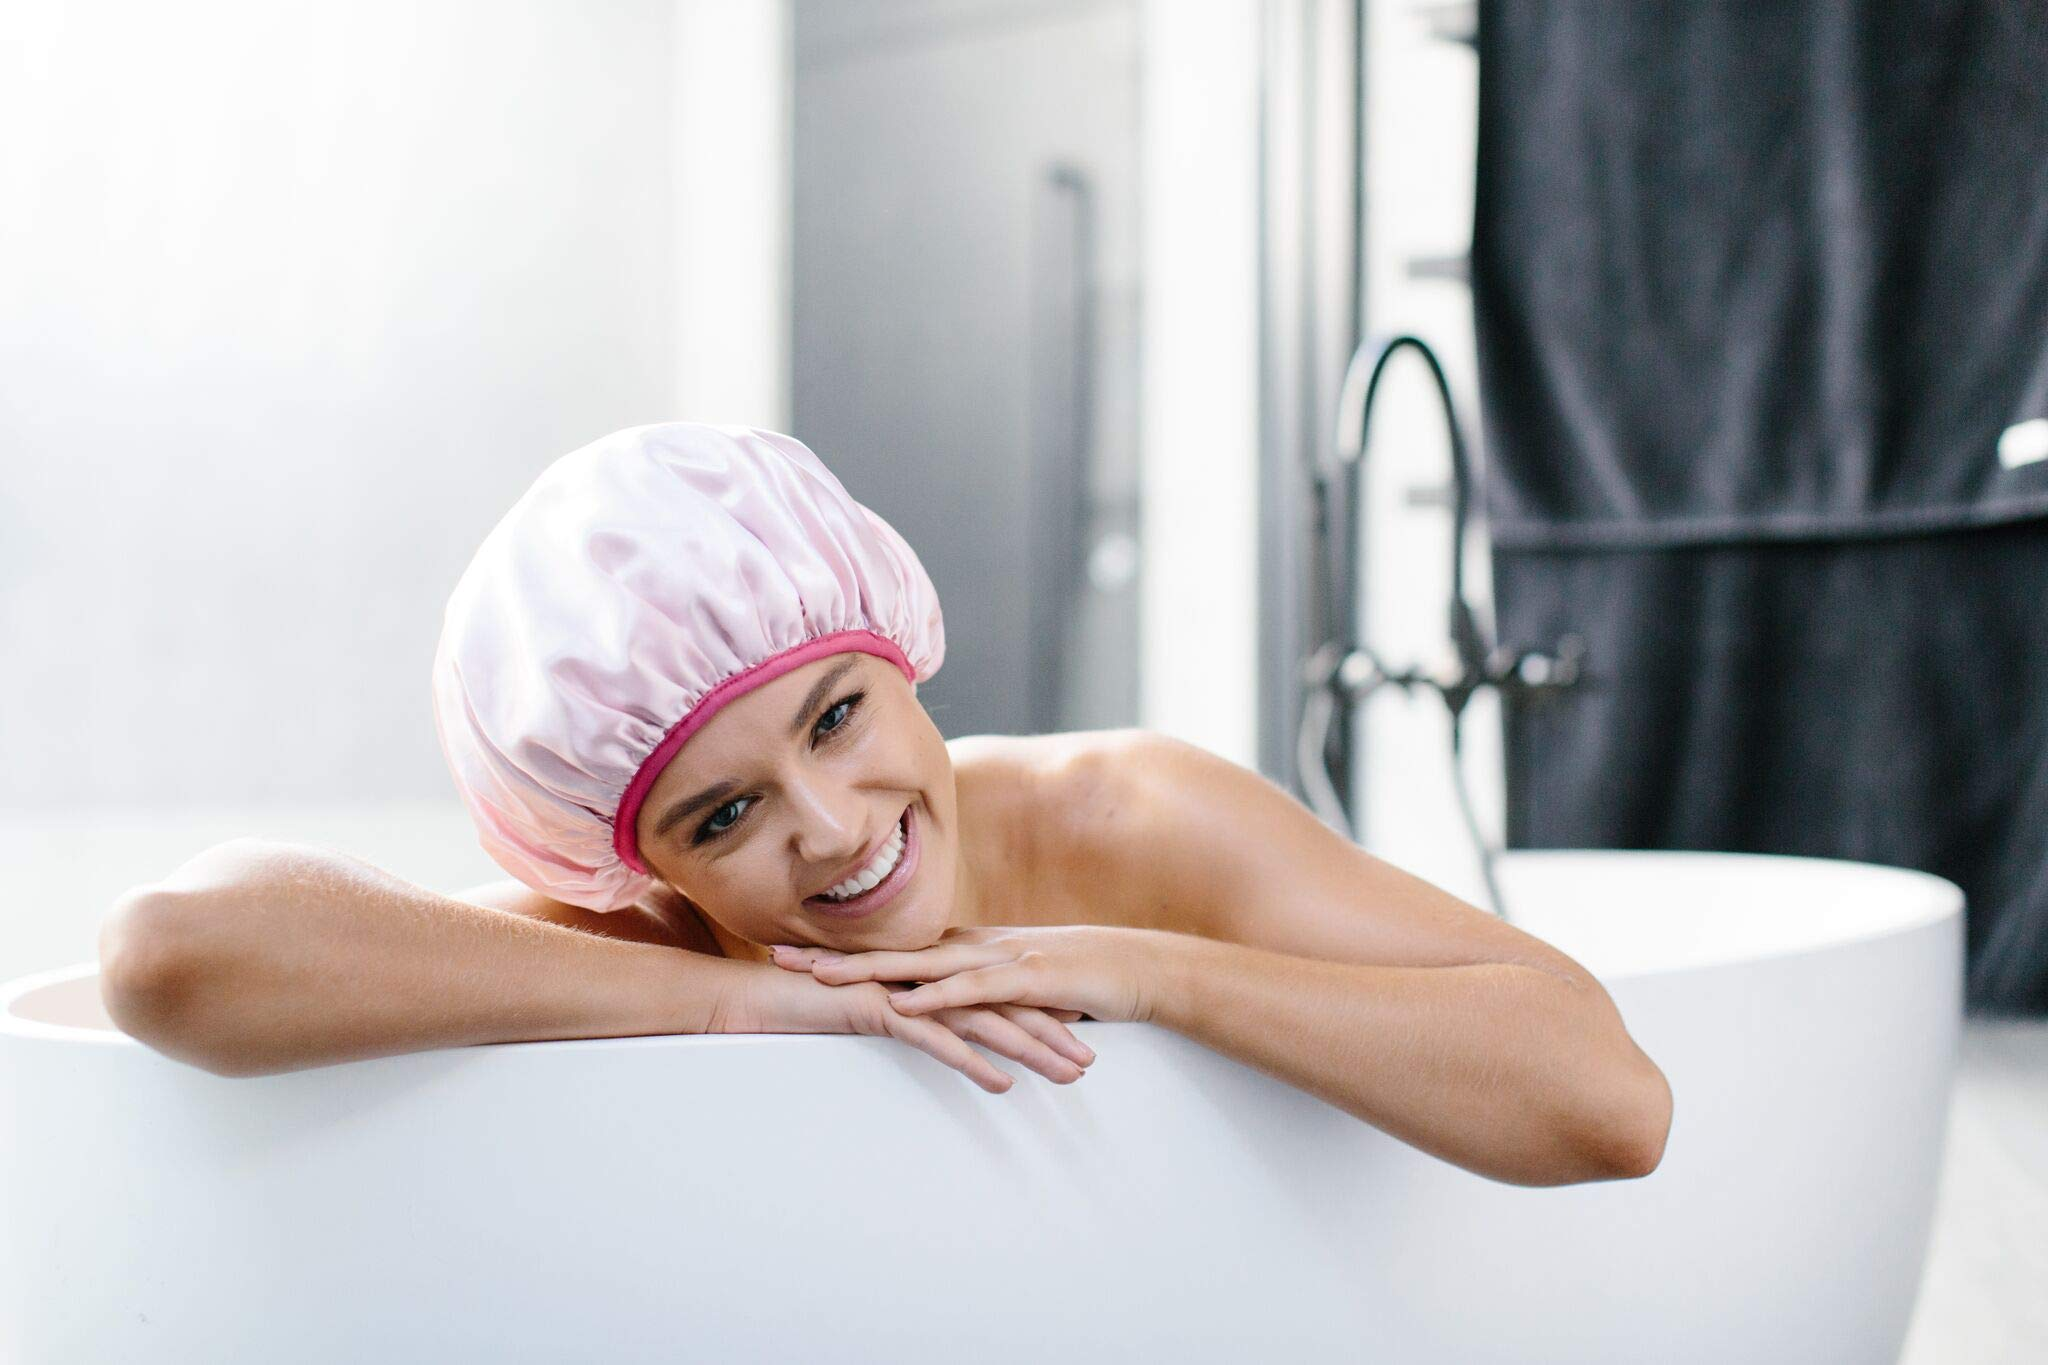 Dilly's Collections Microfiber Shower Caps - Premium Three Layered Shower Cap - Seal Out Moisture & Steam During Shower Time - Protects Hair Treatment -Saves Your Blow Out - Luxury Pink Shower Caps